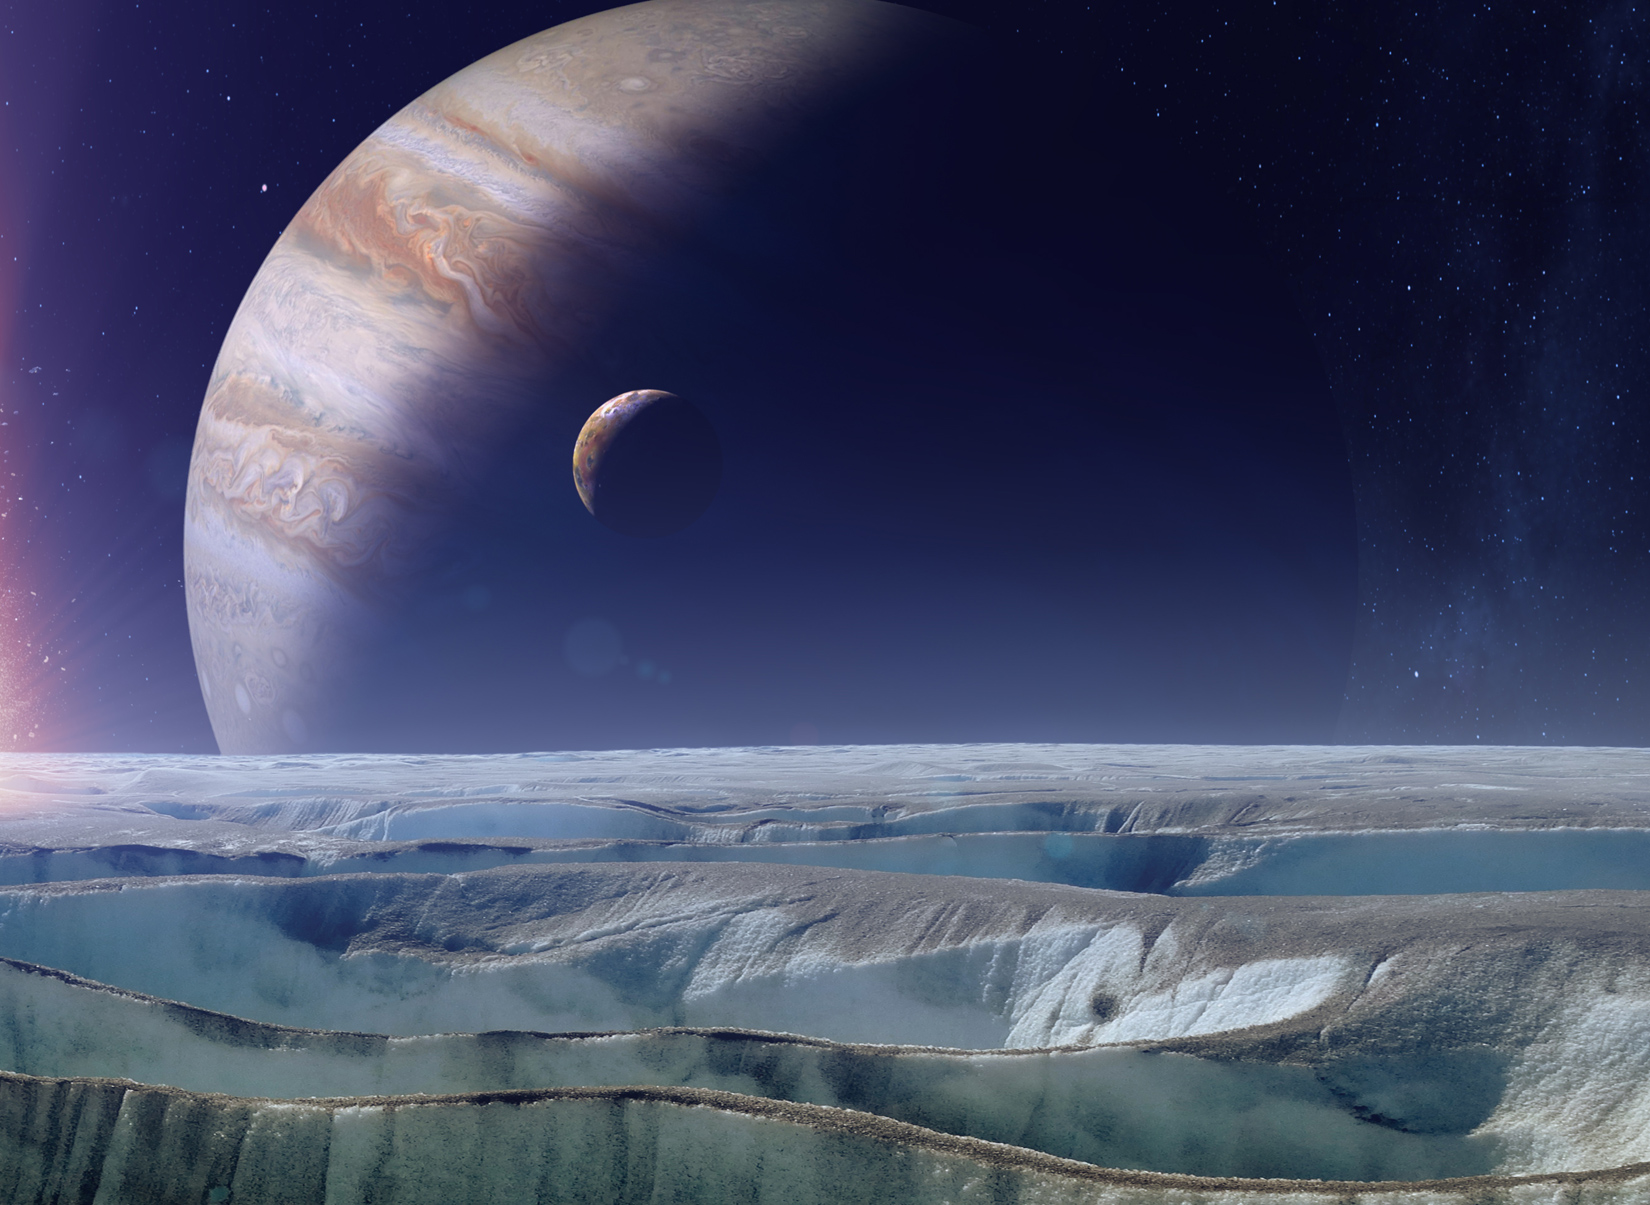 Whether Pluto is a planet or not: all worlds are worth investigating